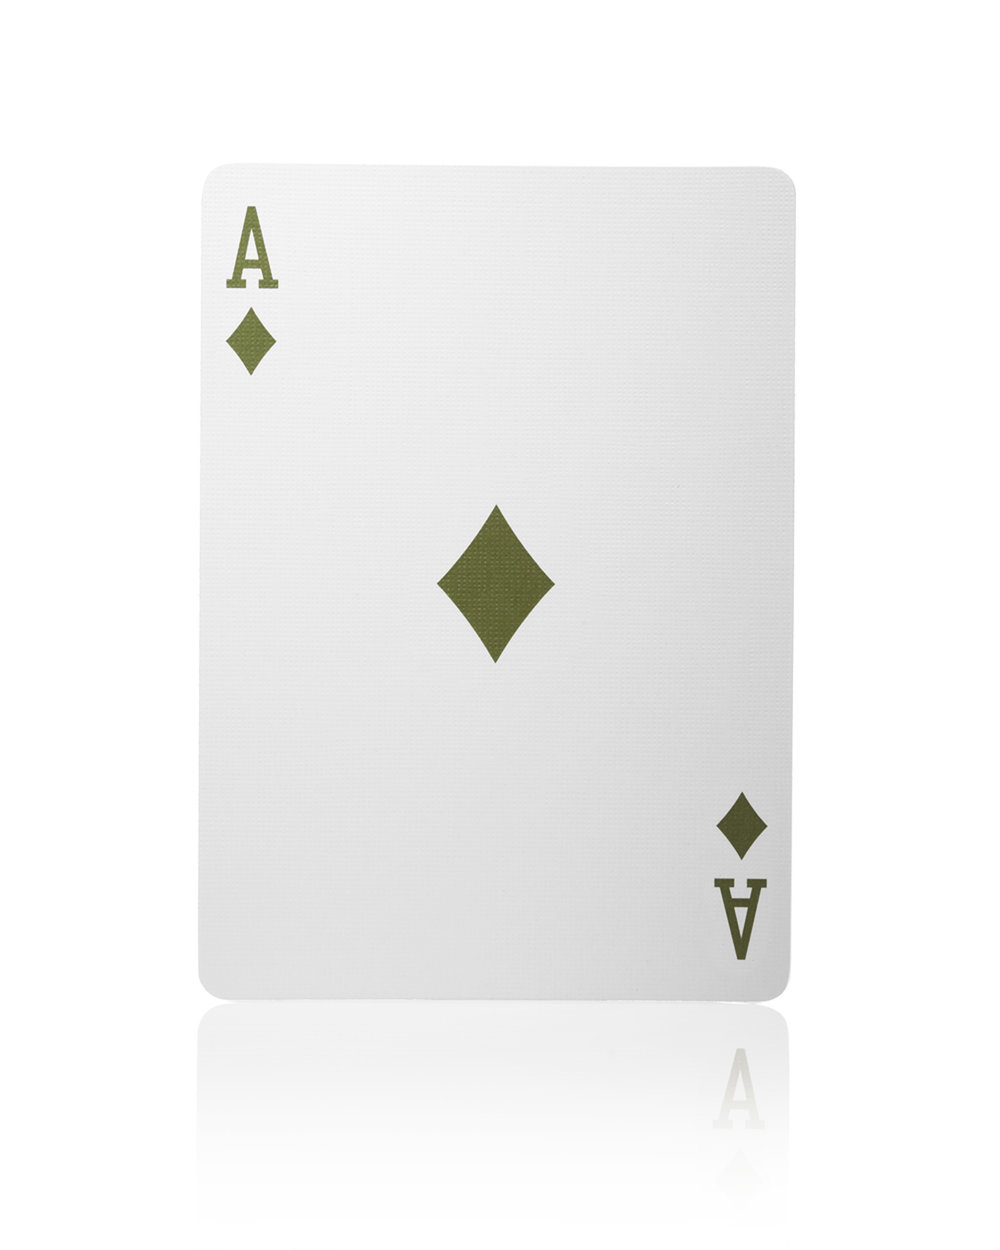 110330-PlayingCards-PlayingCards-008 copy.jpg